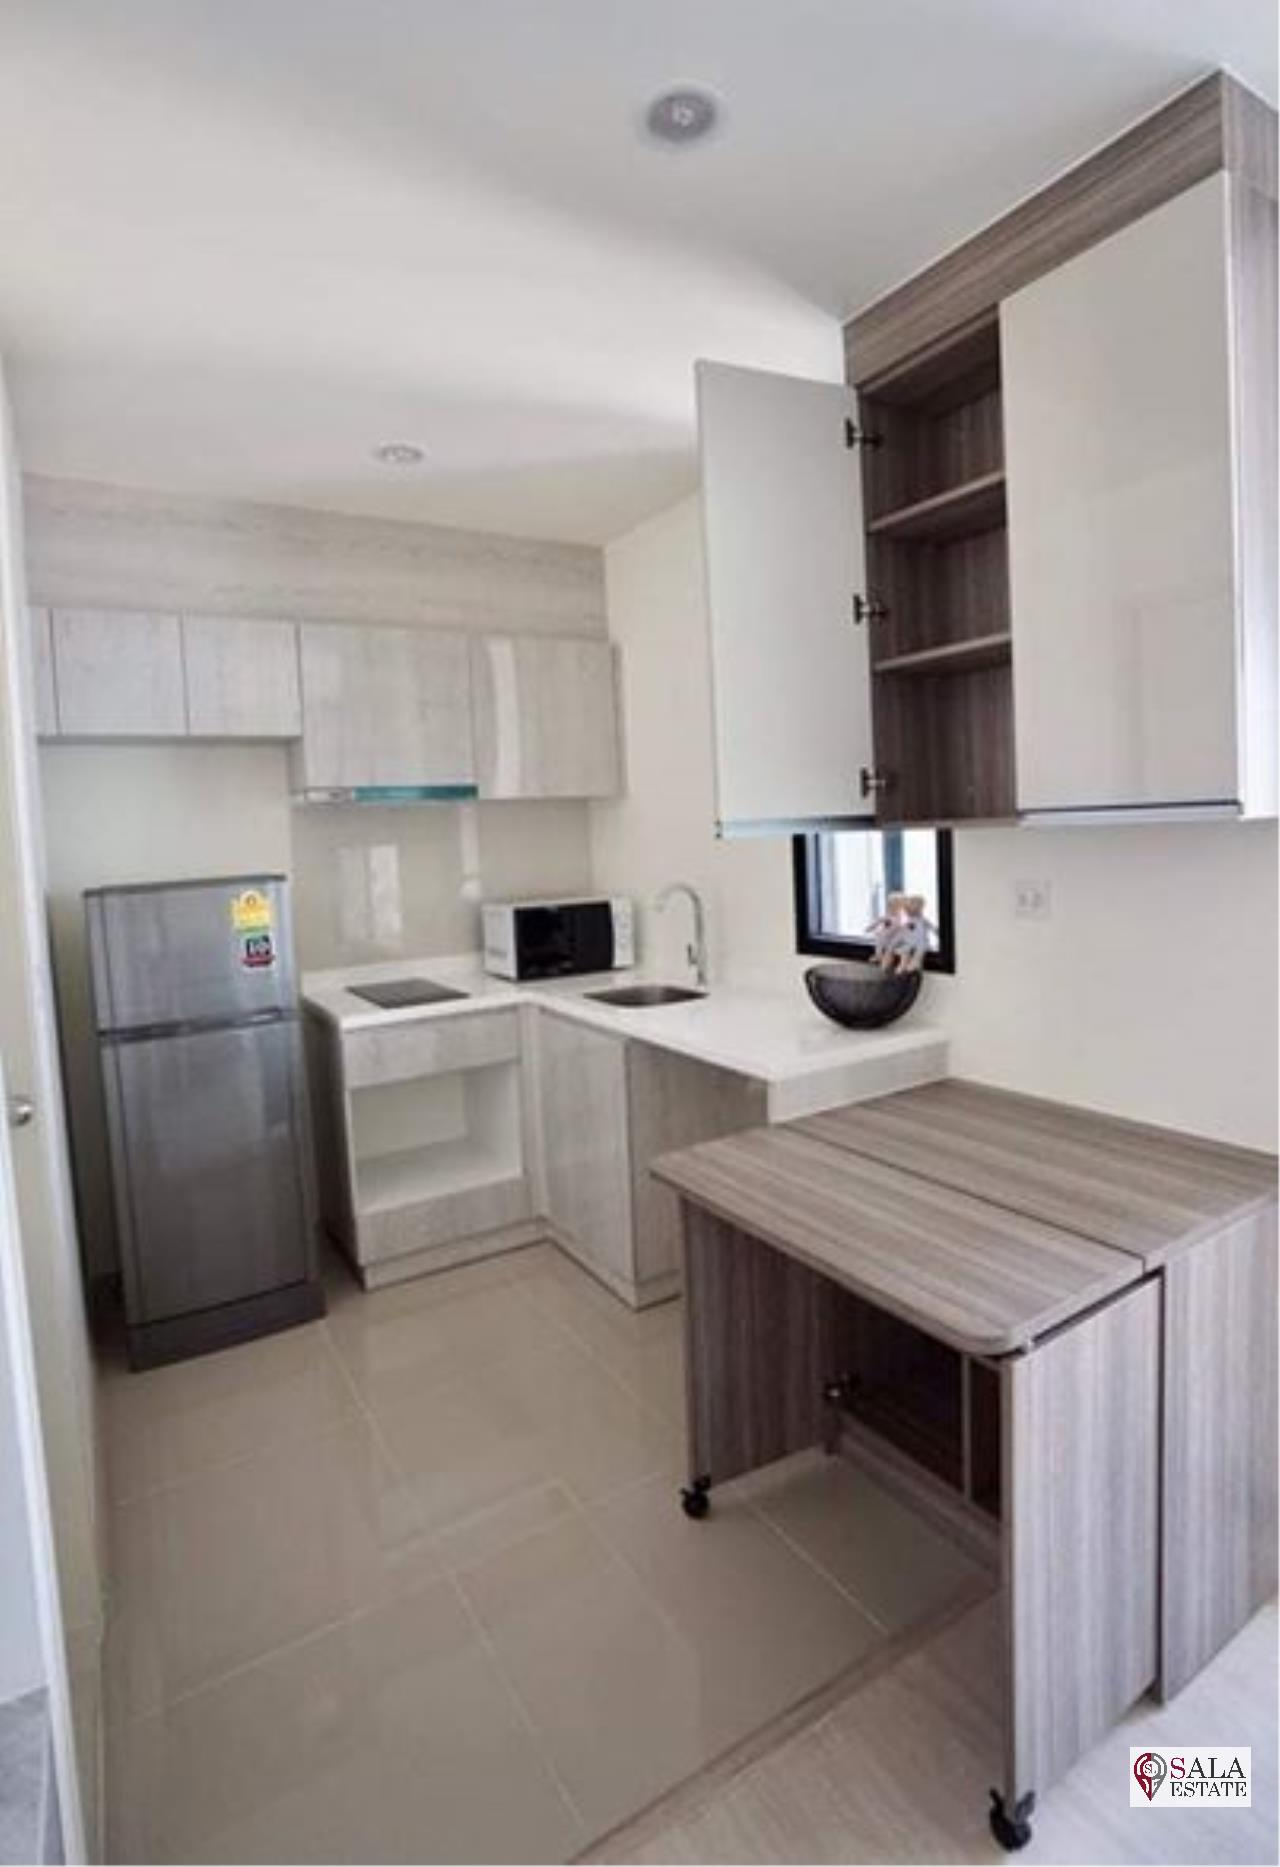 SALA ESTATE Agency's ( FOR RENT ) LIFE ASOKE – MRT PHETCHABURI, 1 BEDROOMS 1 BATHROOMS, FULLY FURNISHED, CITY VIEW. 6